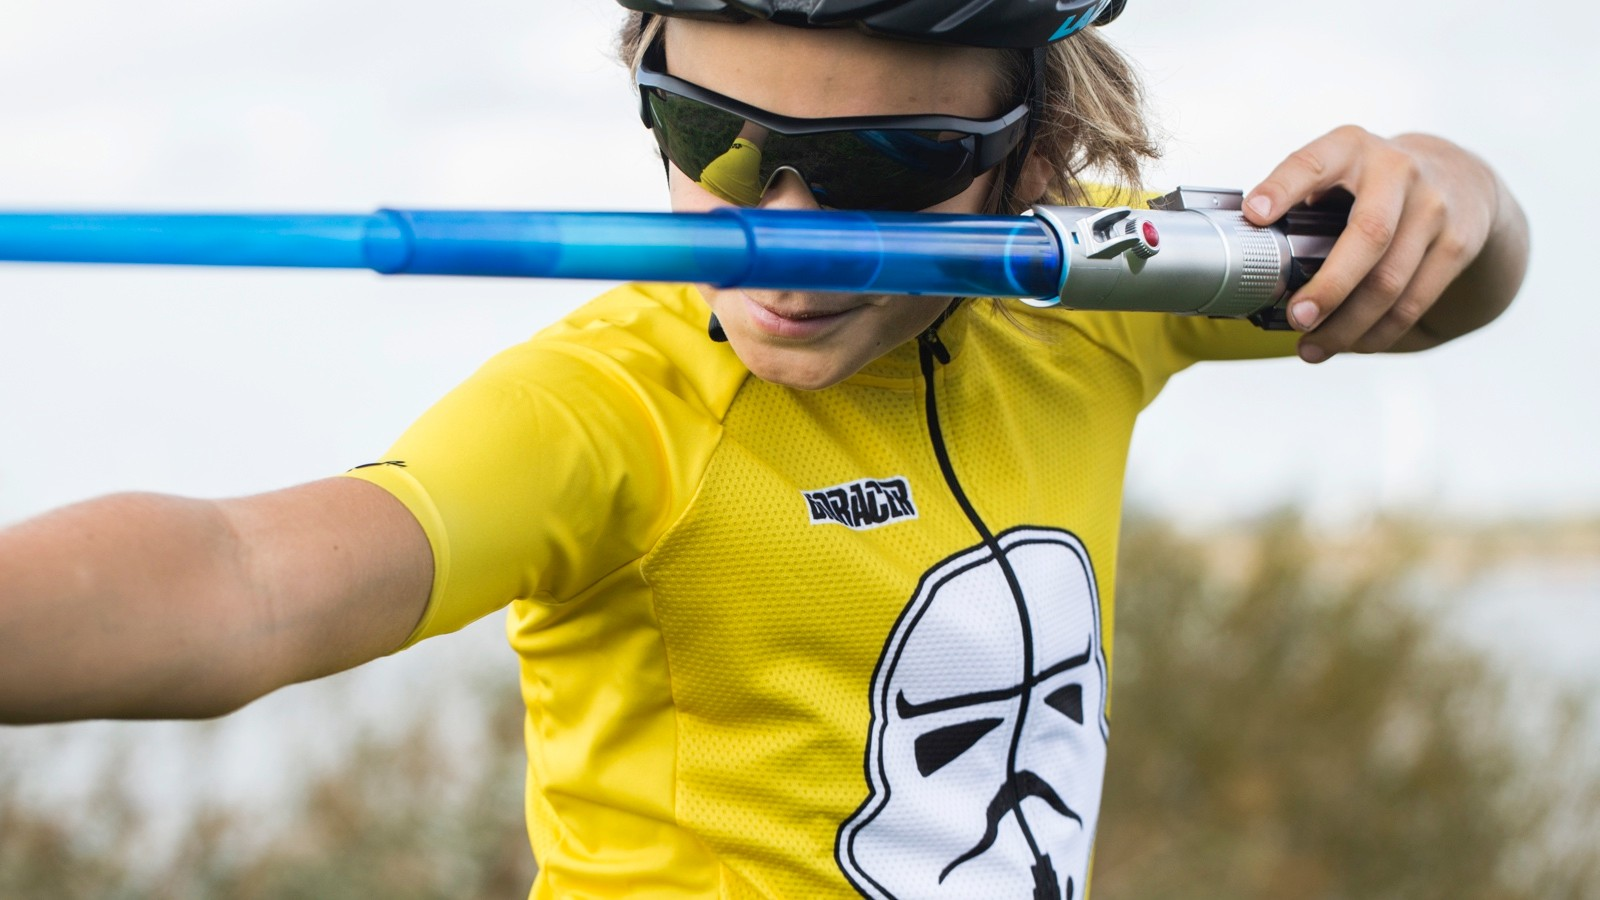 The Junior Collection Stormtrooper jersey